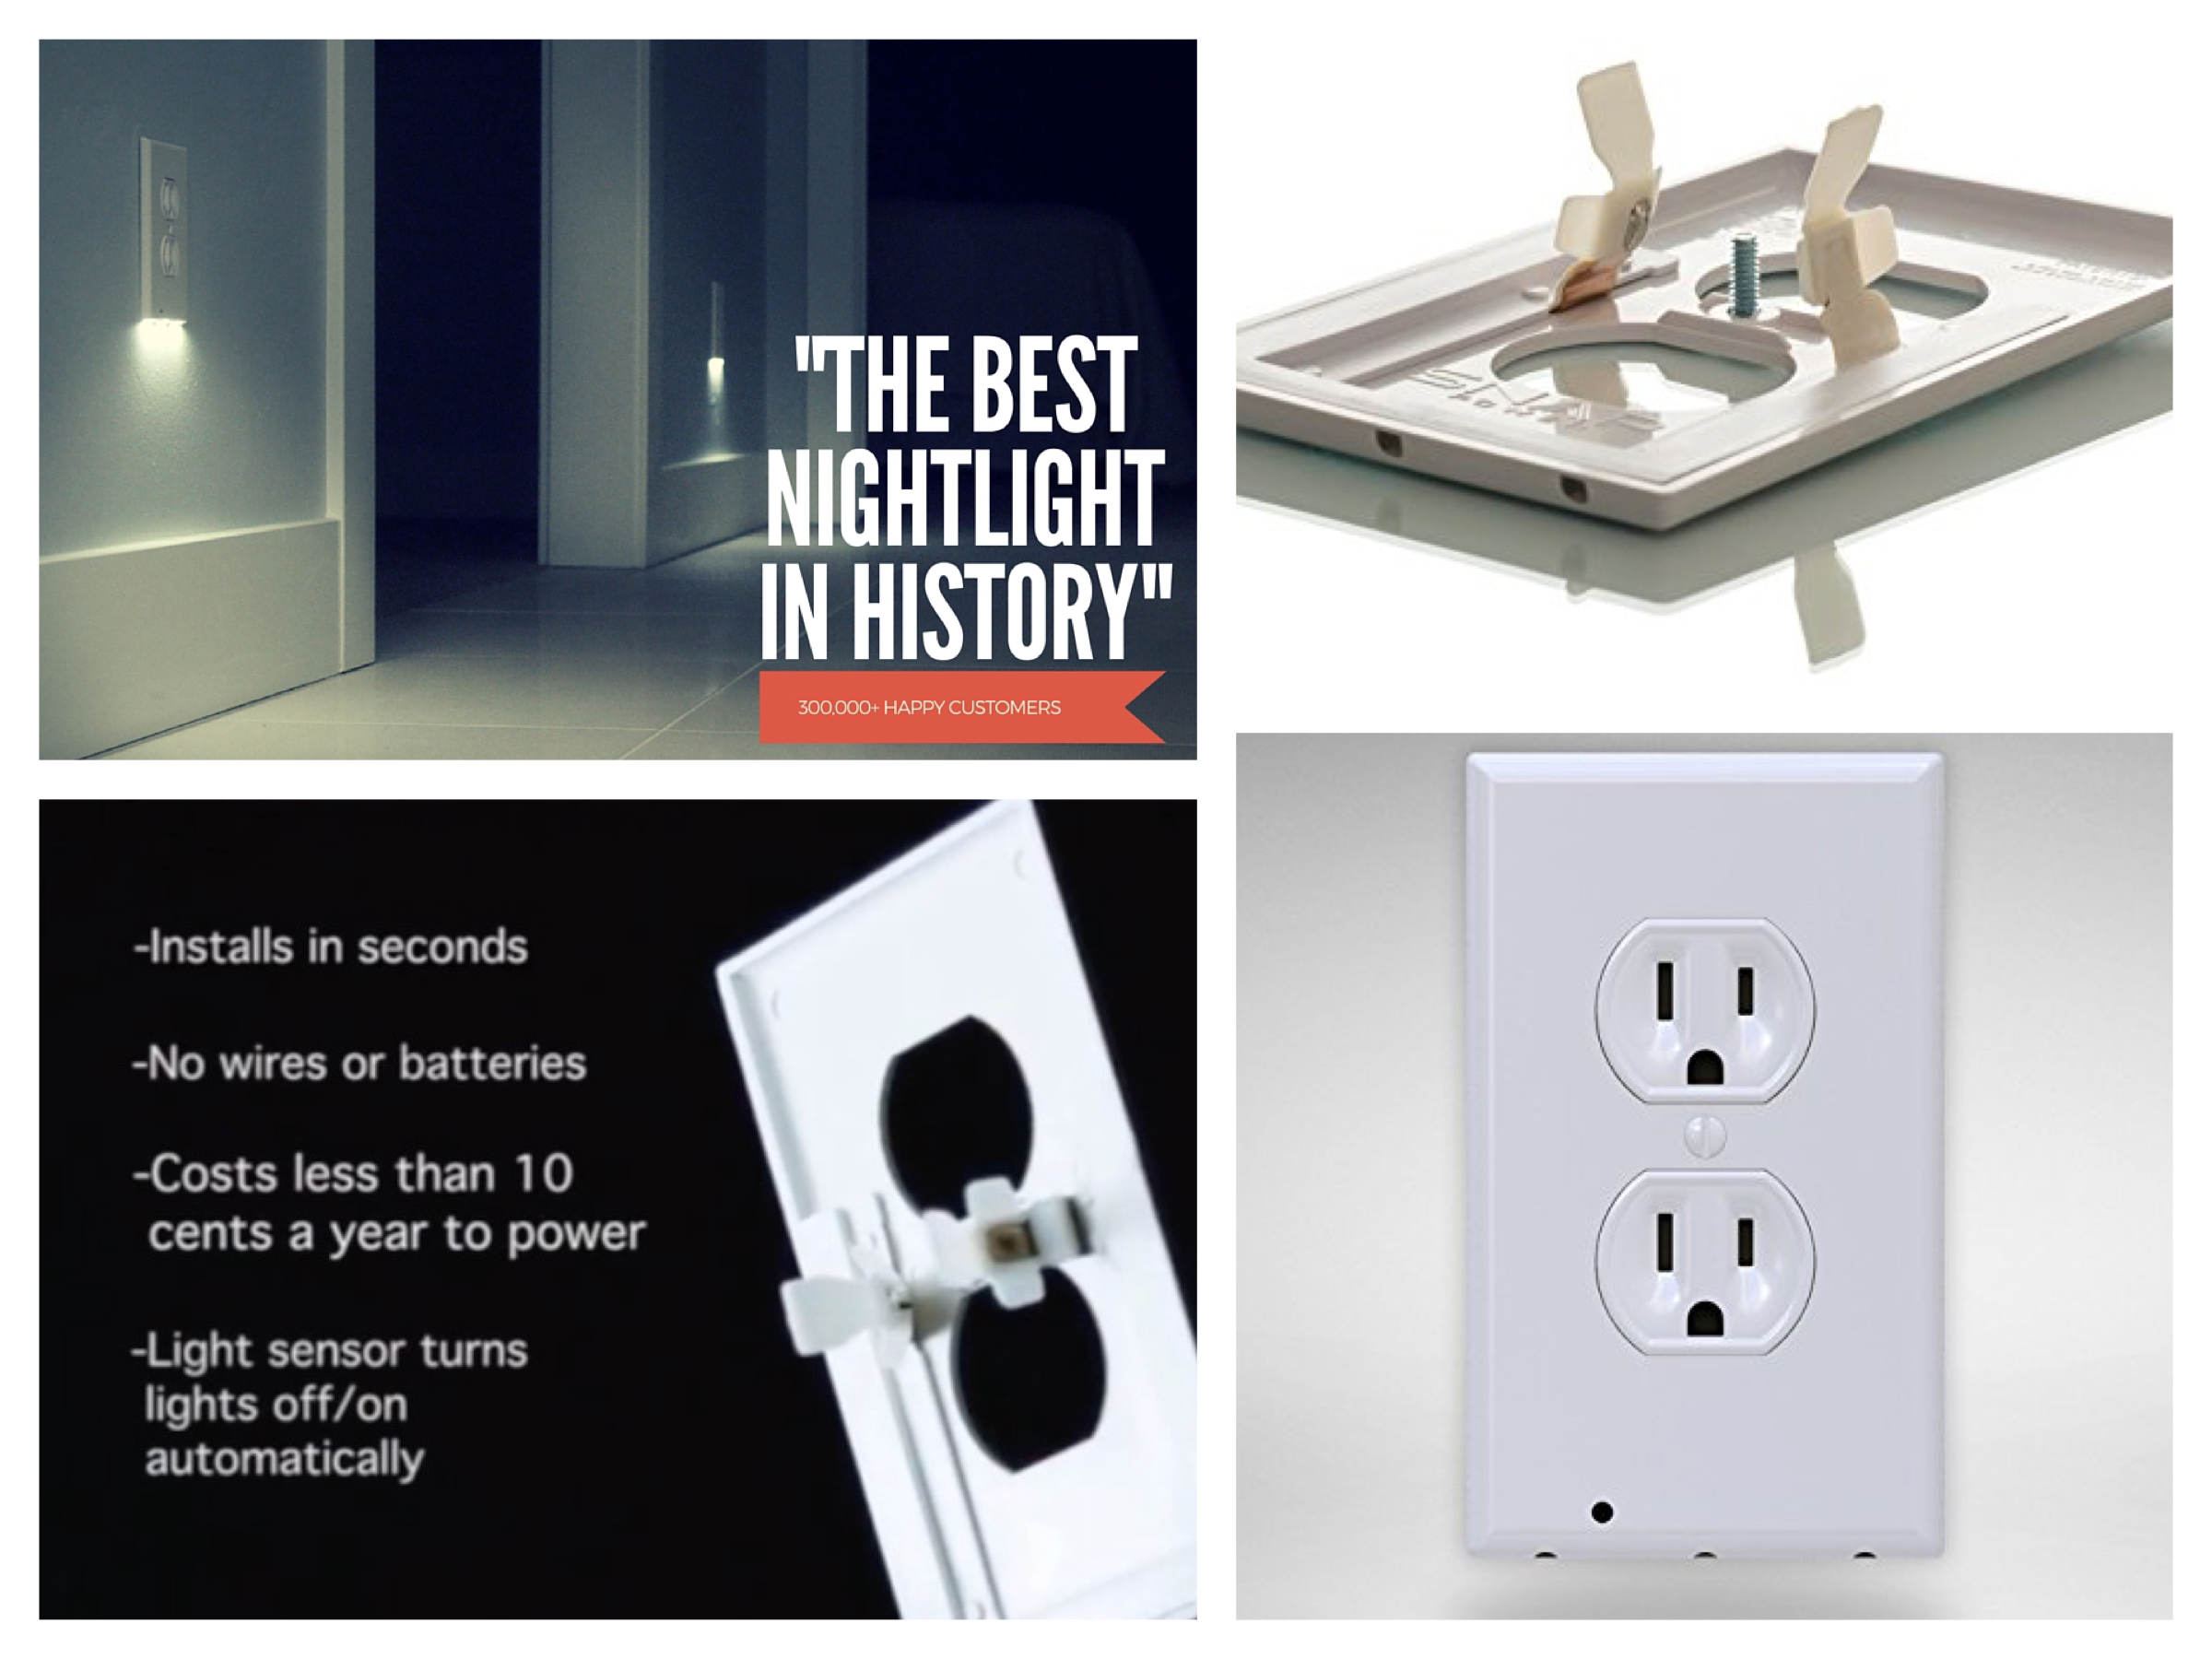 SnapPower The Best Nightlight in History Outlet Coverplate with LED Night Lights